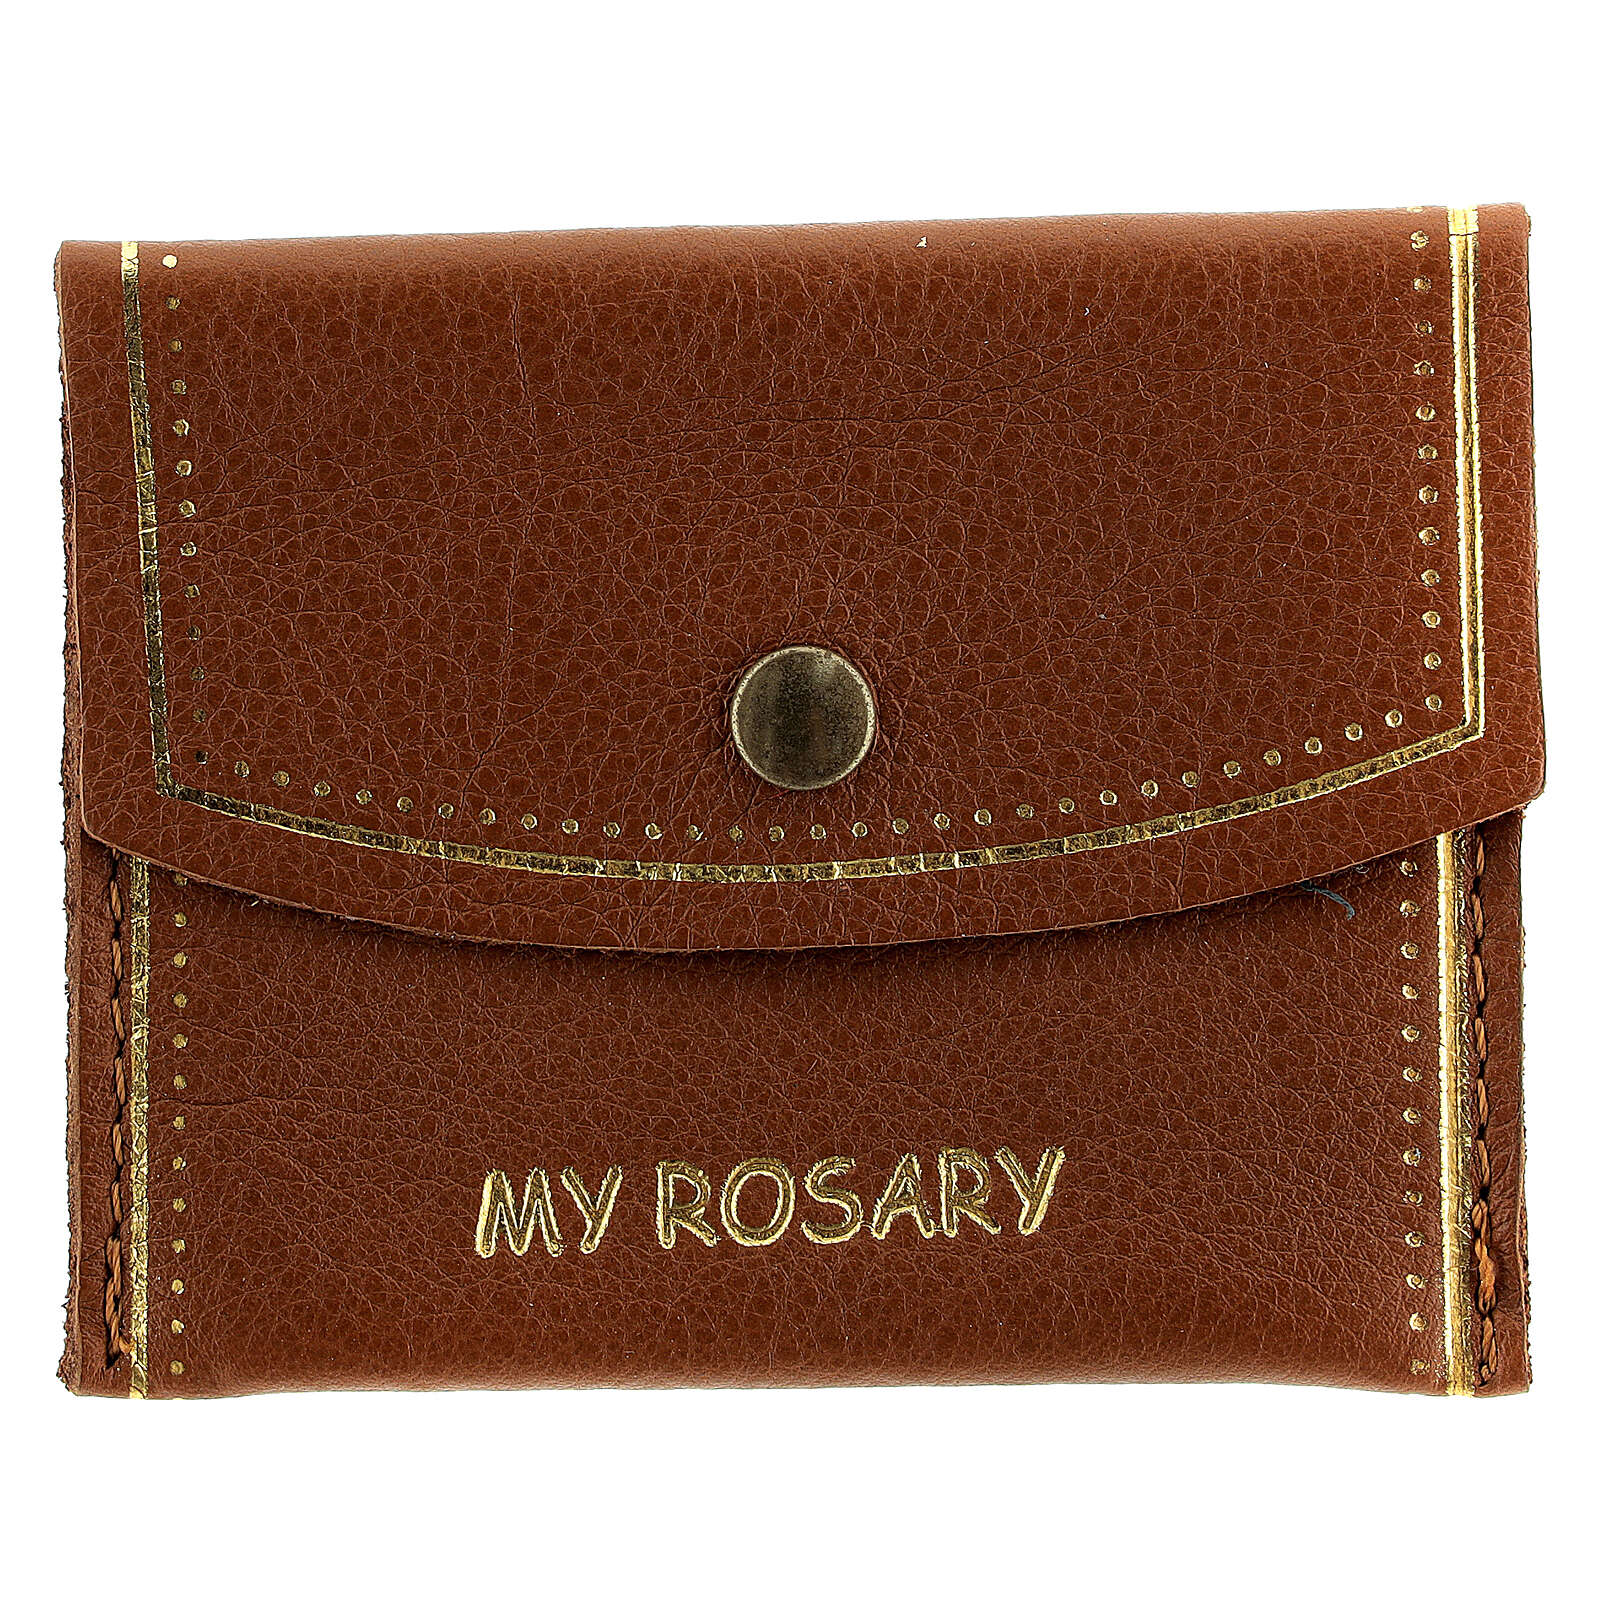 Brown leather rosary bag My Rosary 7x9 cm 4